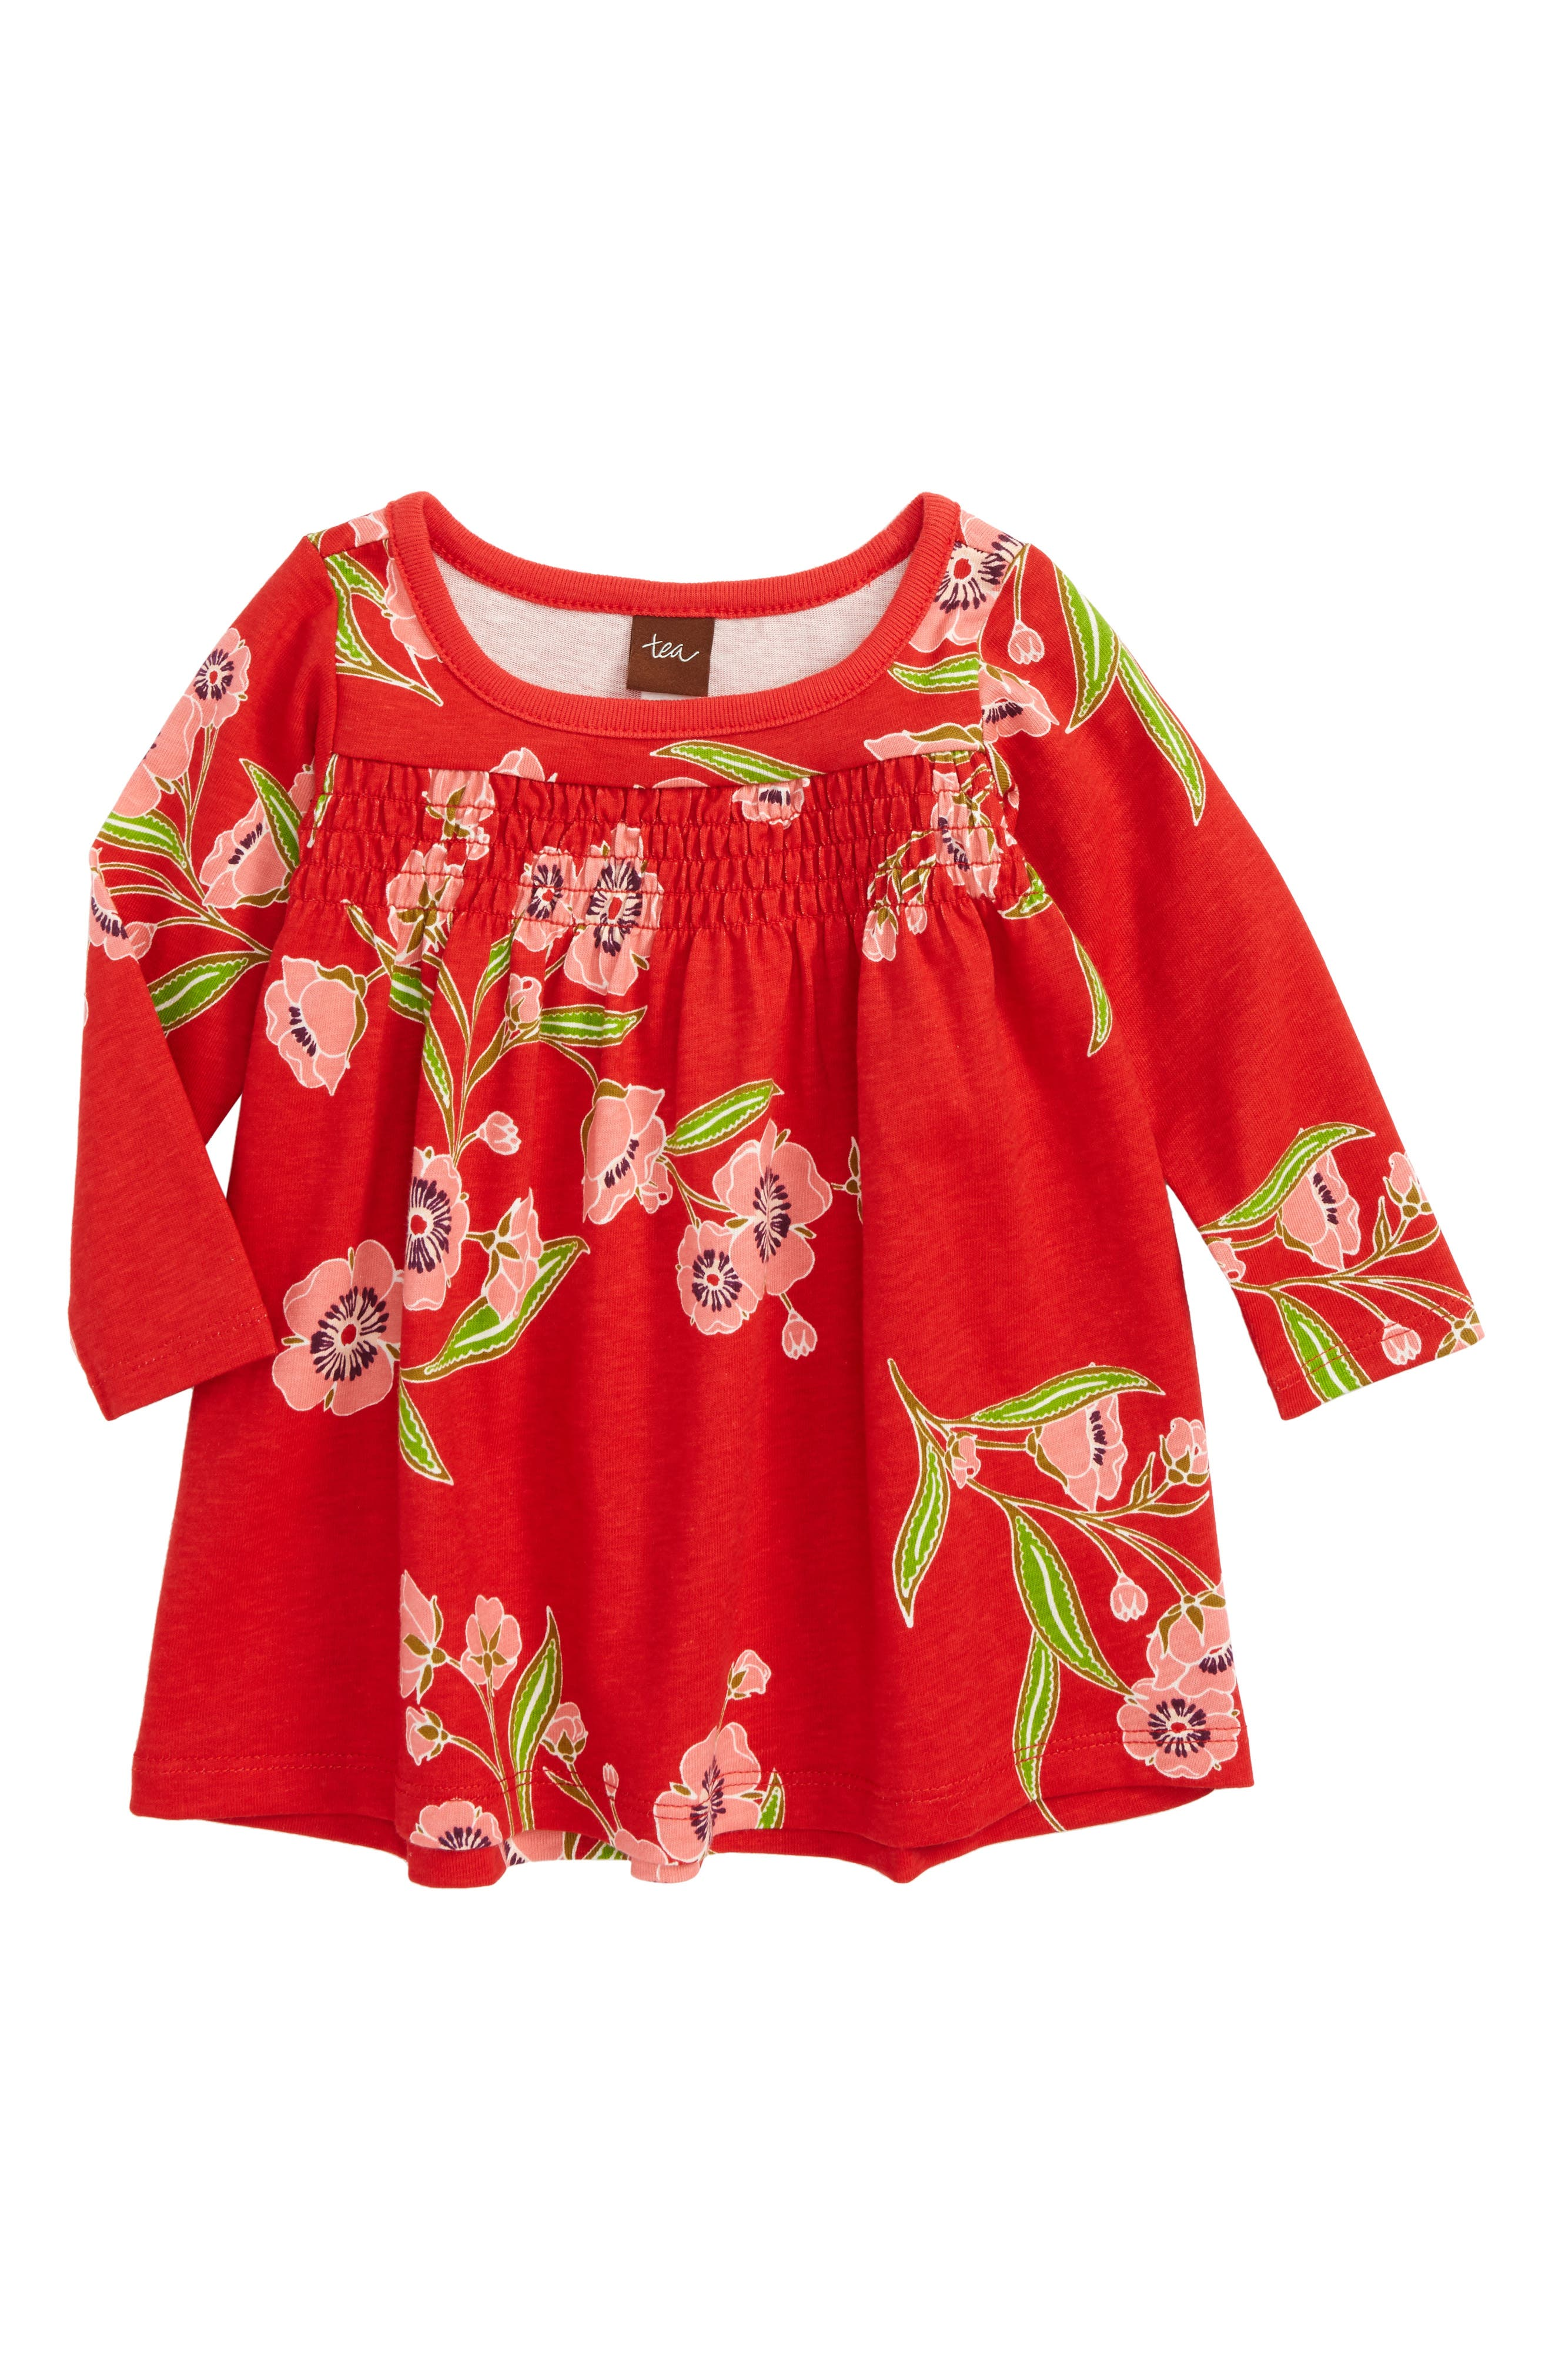 Rowan Smocked Dress,                             Main thumbnail 1, color,                             Red Lantern